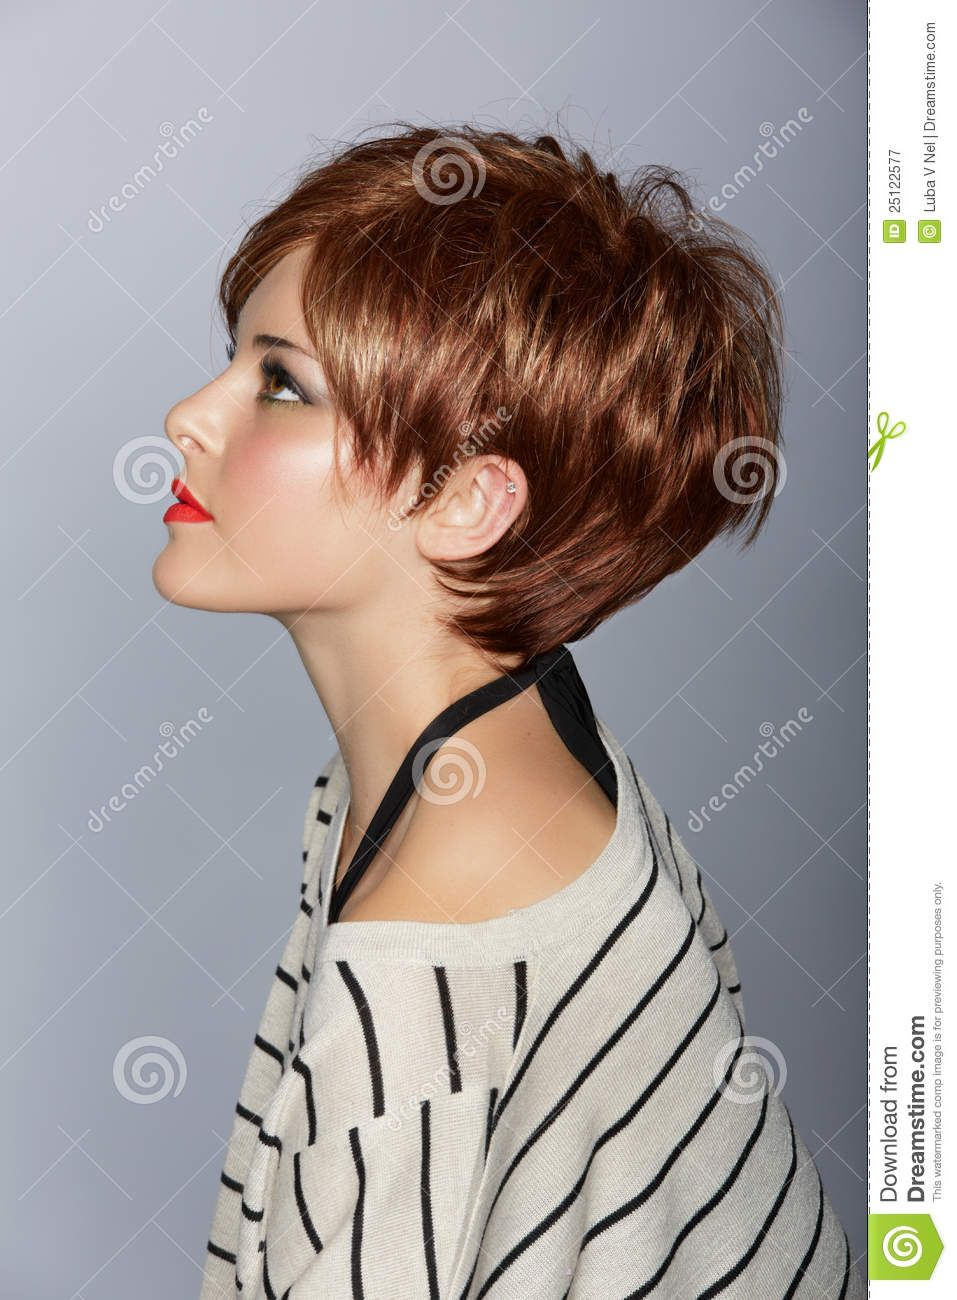 Woman with short red hair stock image image of girl